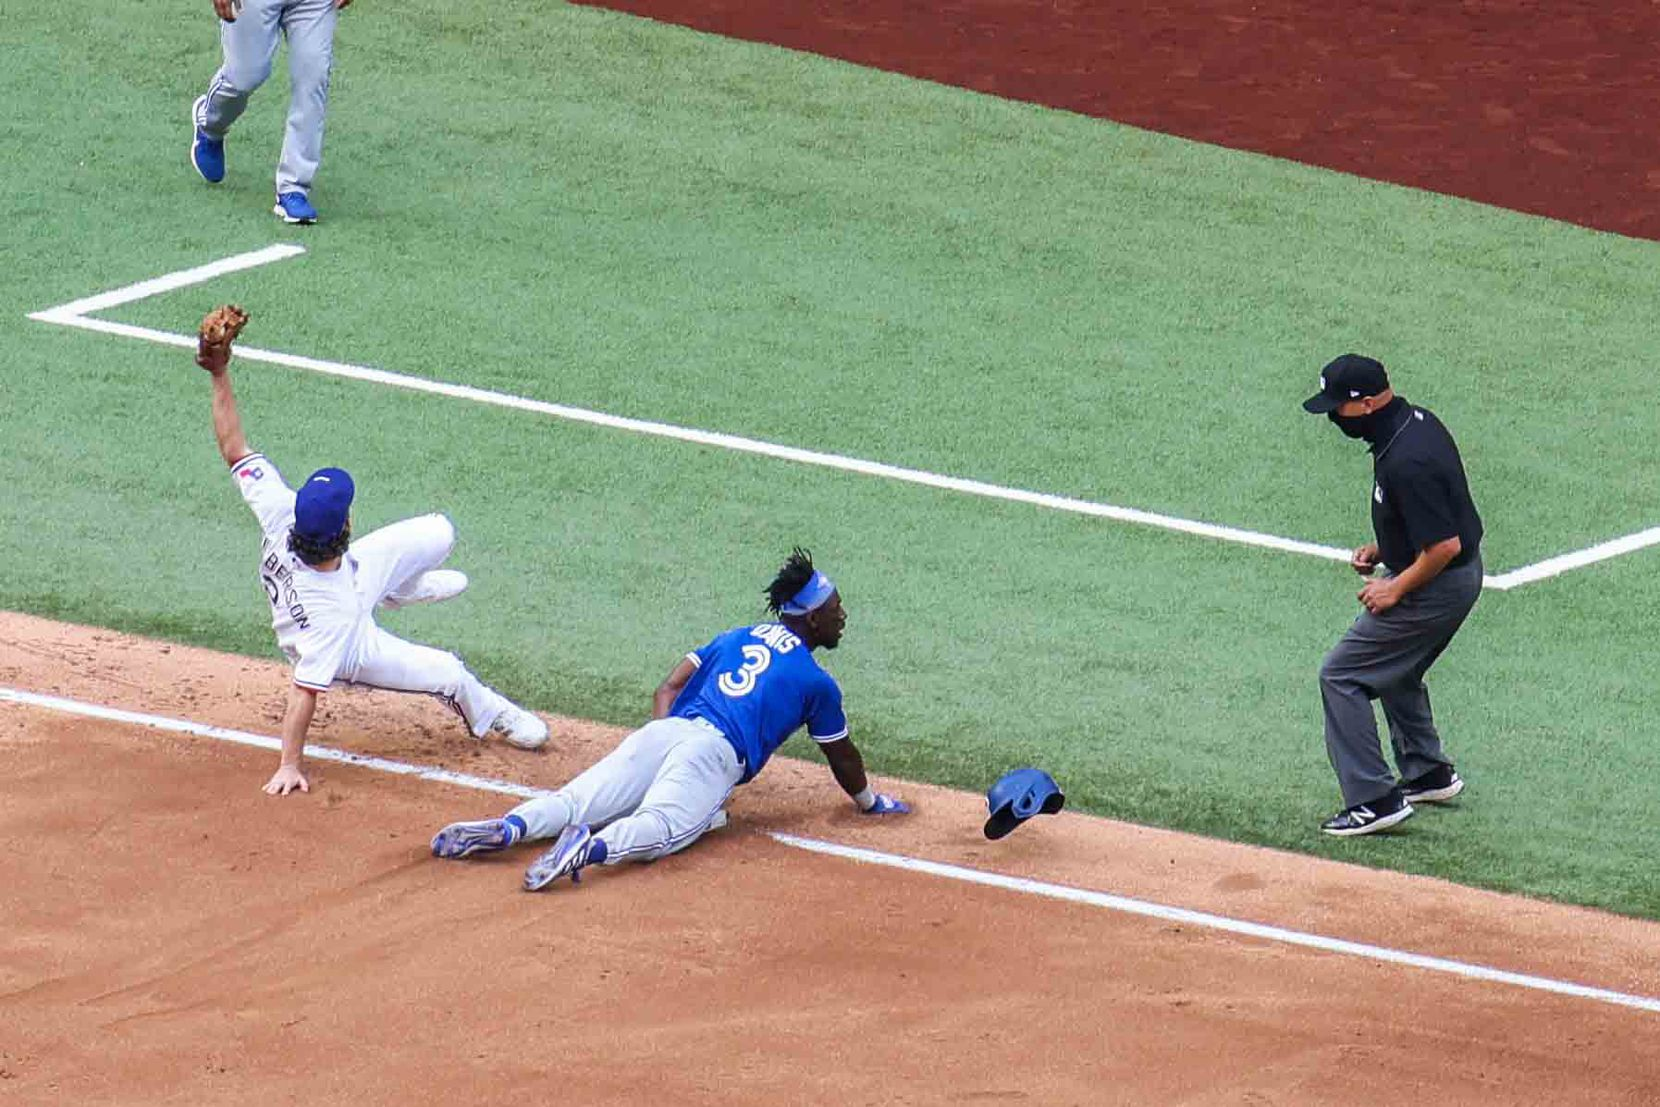 Toronto Blue Jays outfielder Jonathan Davis No. 3 gets tagged out by Texas Ranger infielder Charlie Culberson No. 2 as Davis tries to steal third base at the Globe Life Field during opening day in Arlington, Texas on Monday, April 5, 2021. (Lola Gomez/The Dallas Morning News)